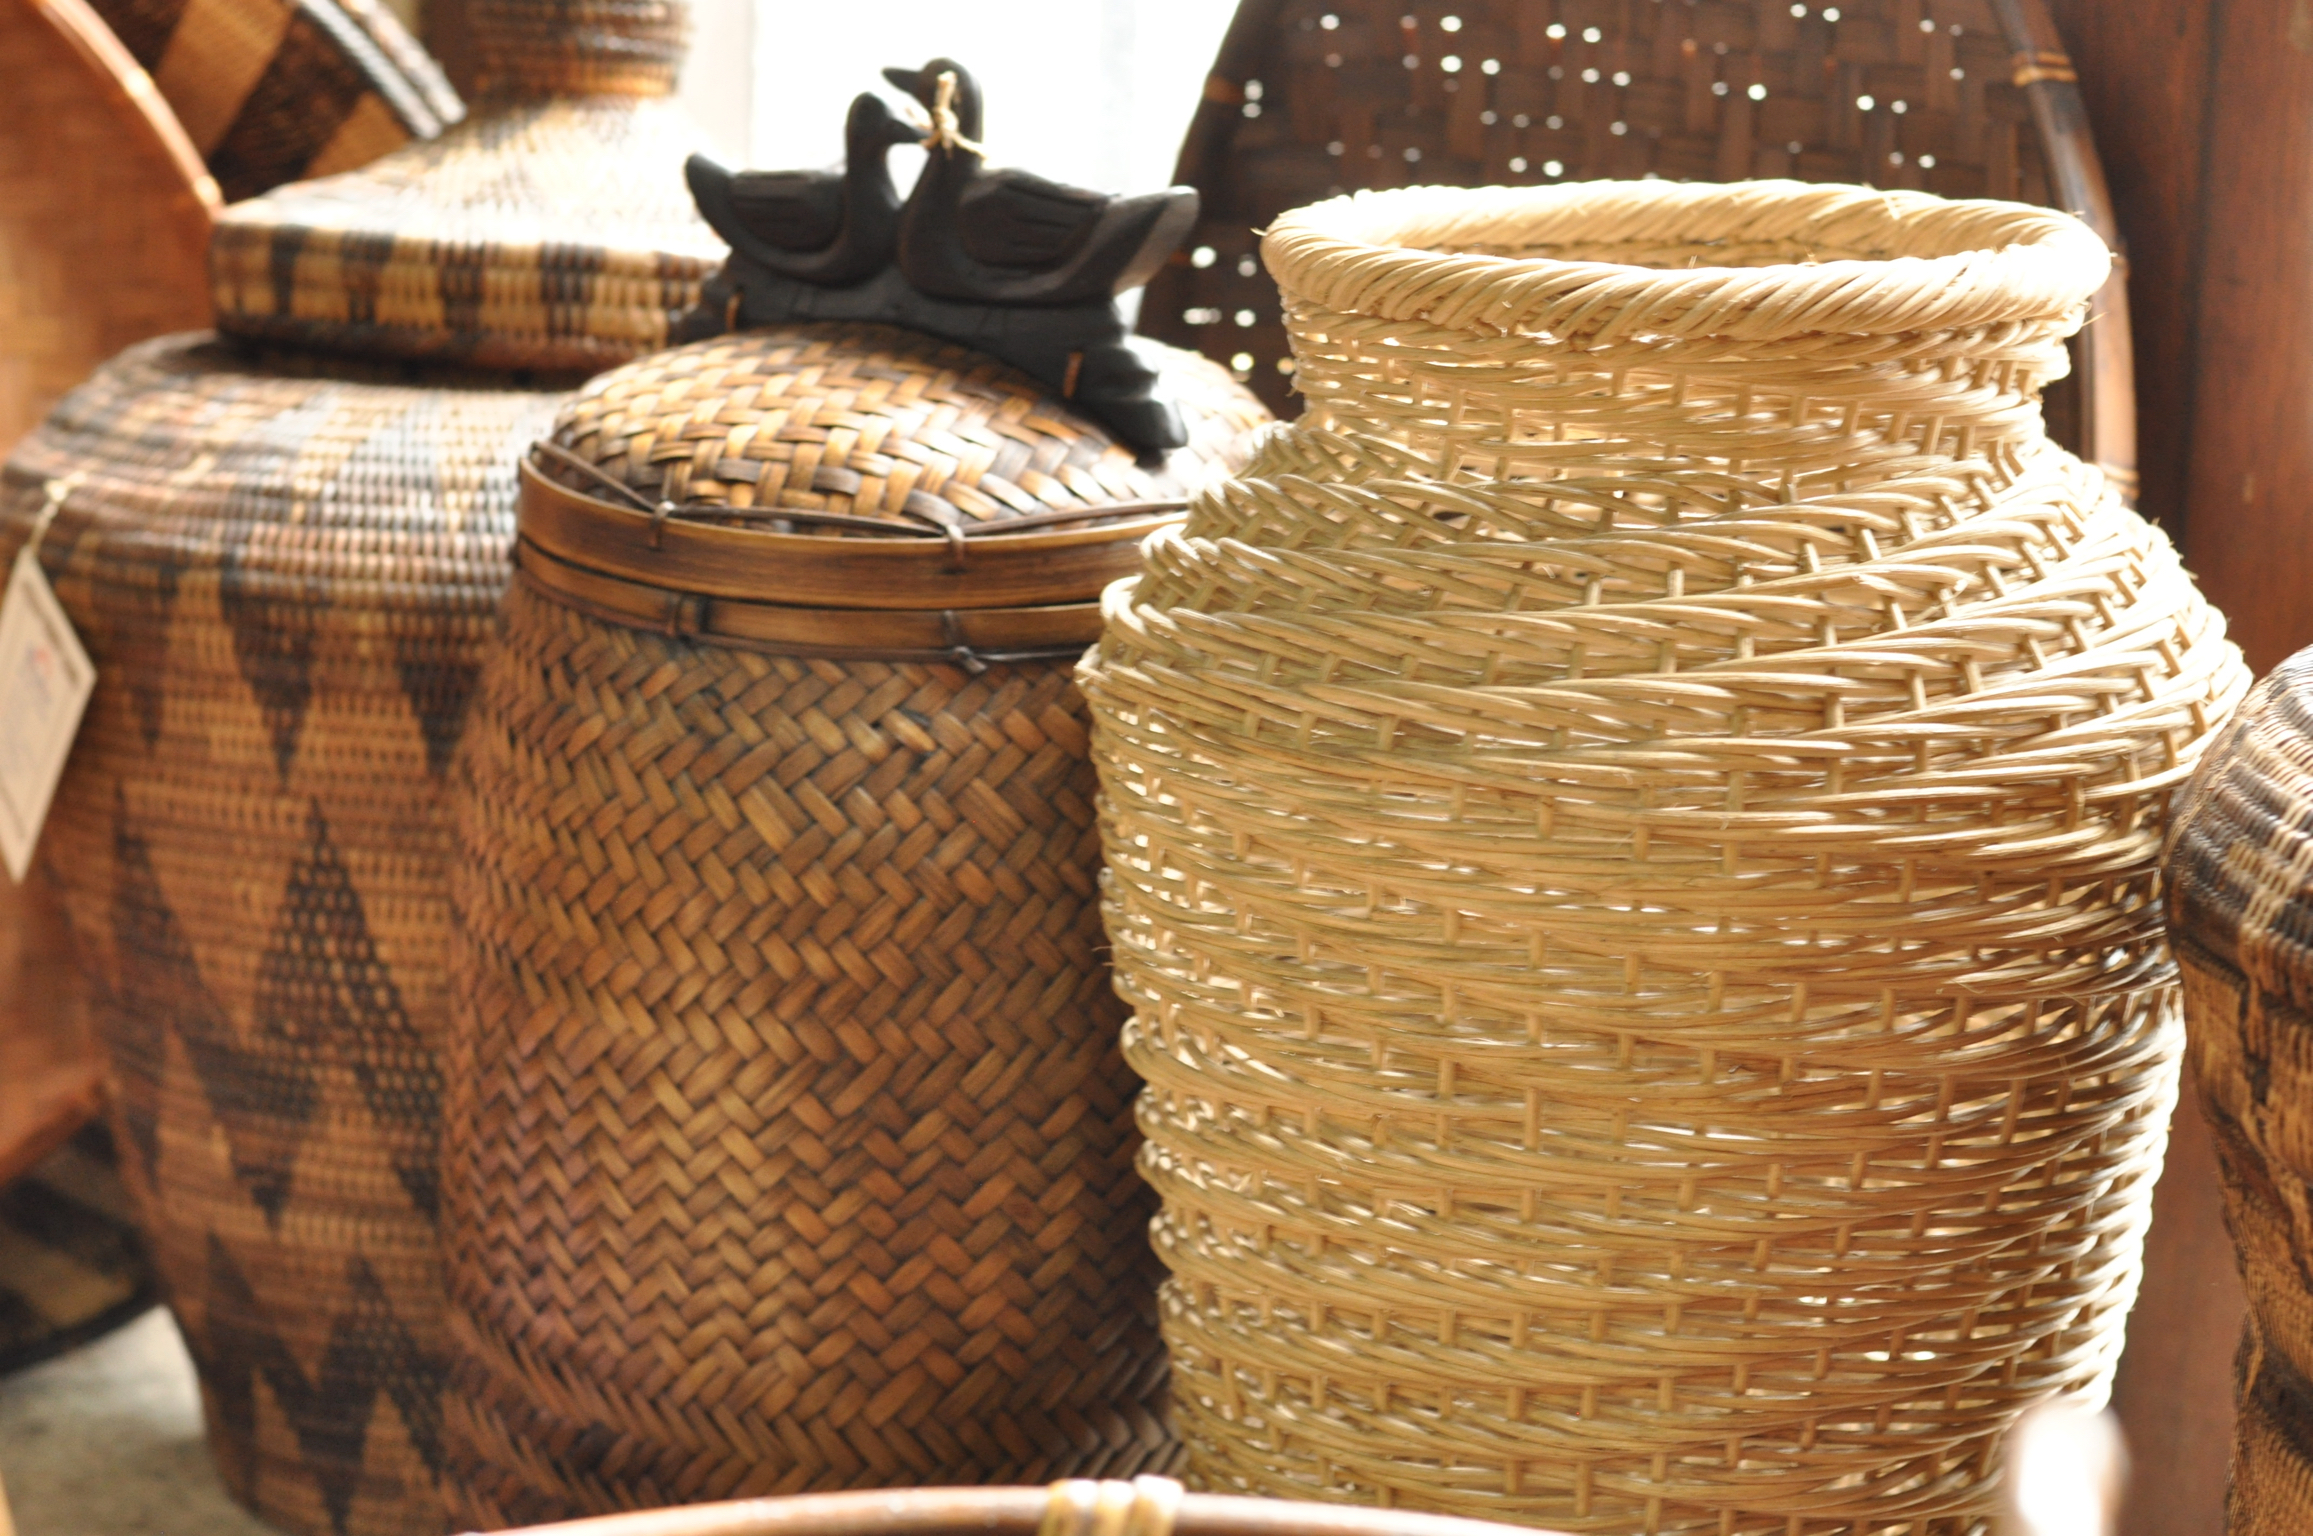 Traditionally woven baskets for sale Intramuros, Manila, Philippines